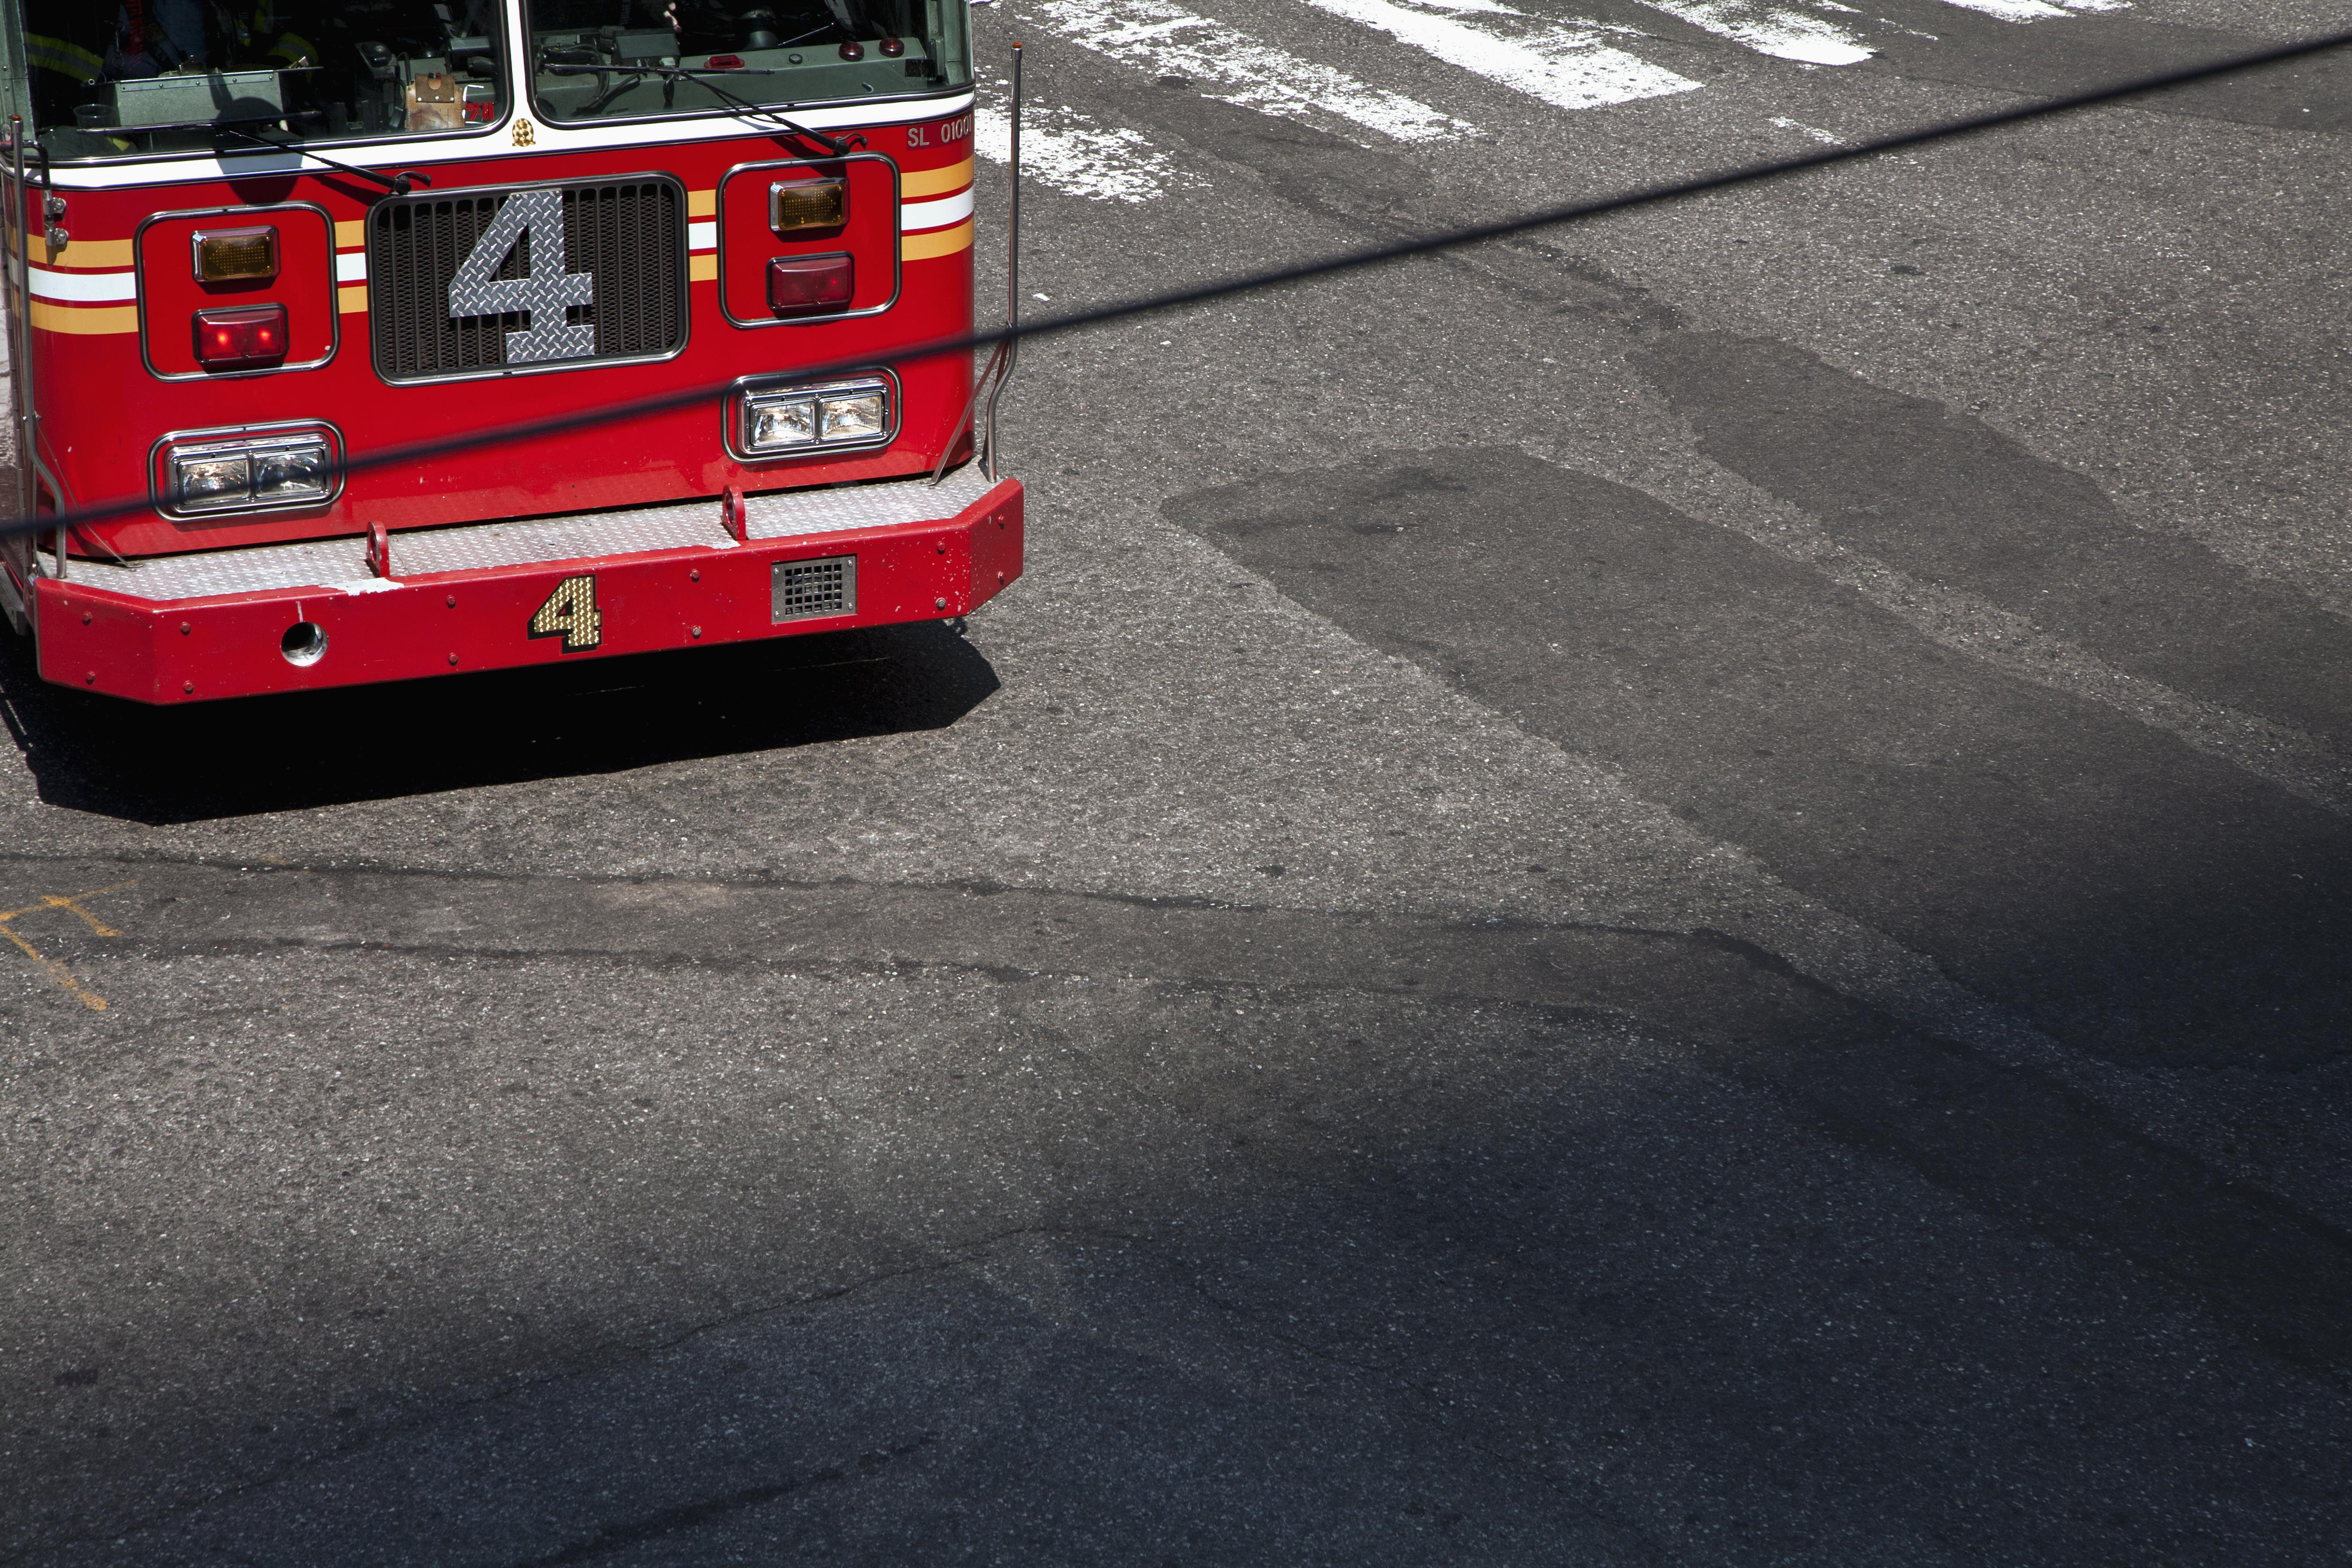 The front part of a fire truck, high angle view